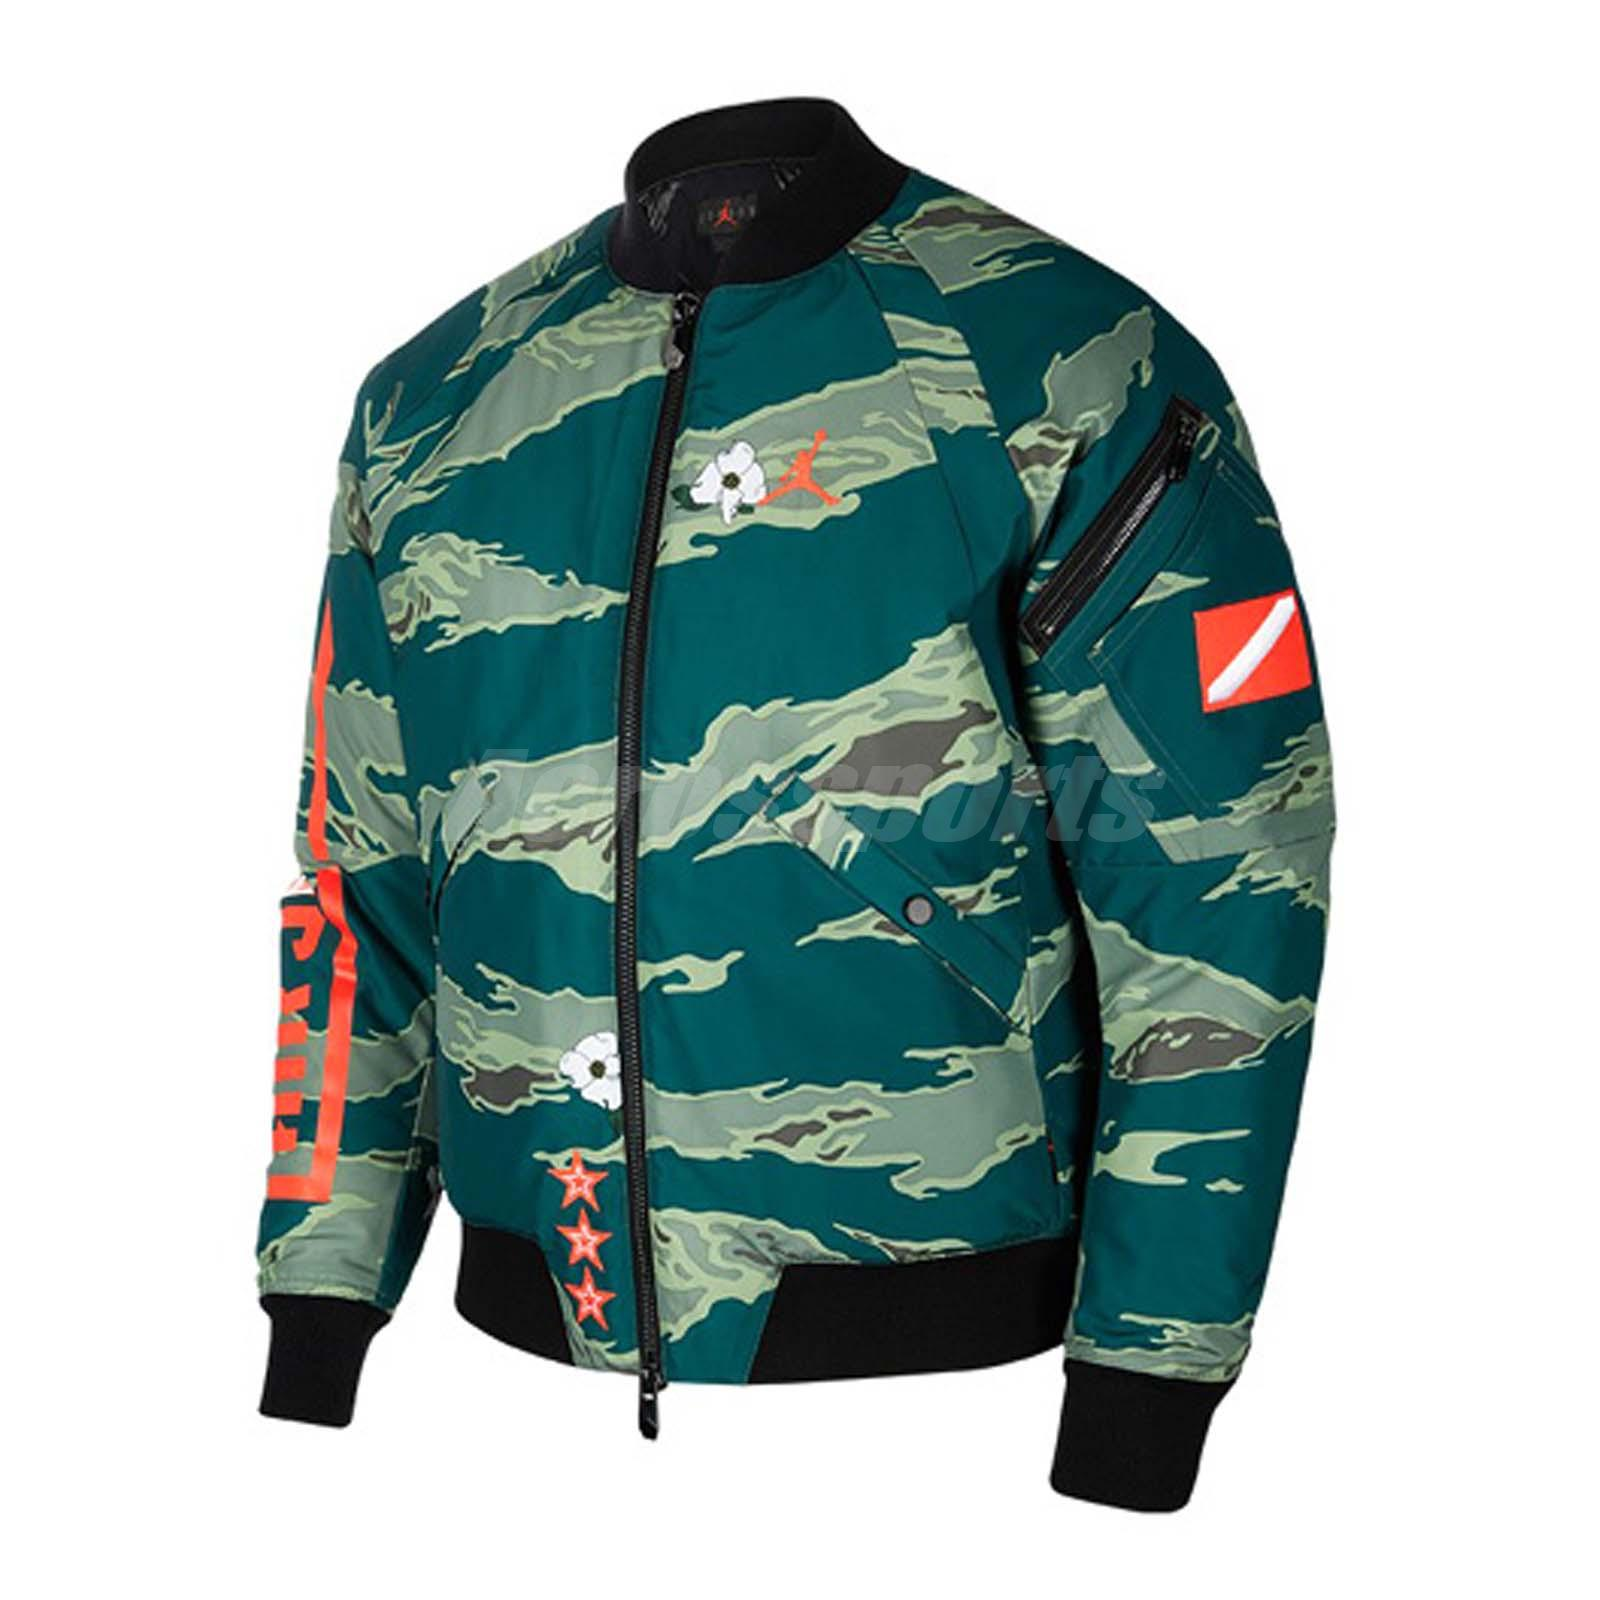 585075c11240 Details about Nike Air Jordan GFX Jacket Bomber MA1 Flight AJ Jumpman MA-1  Gym Camo AT9006-010